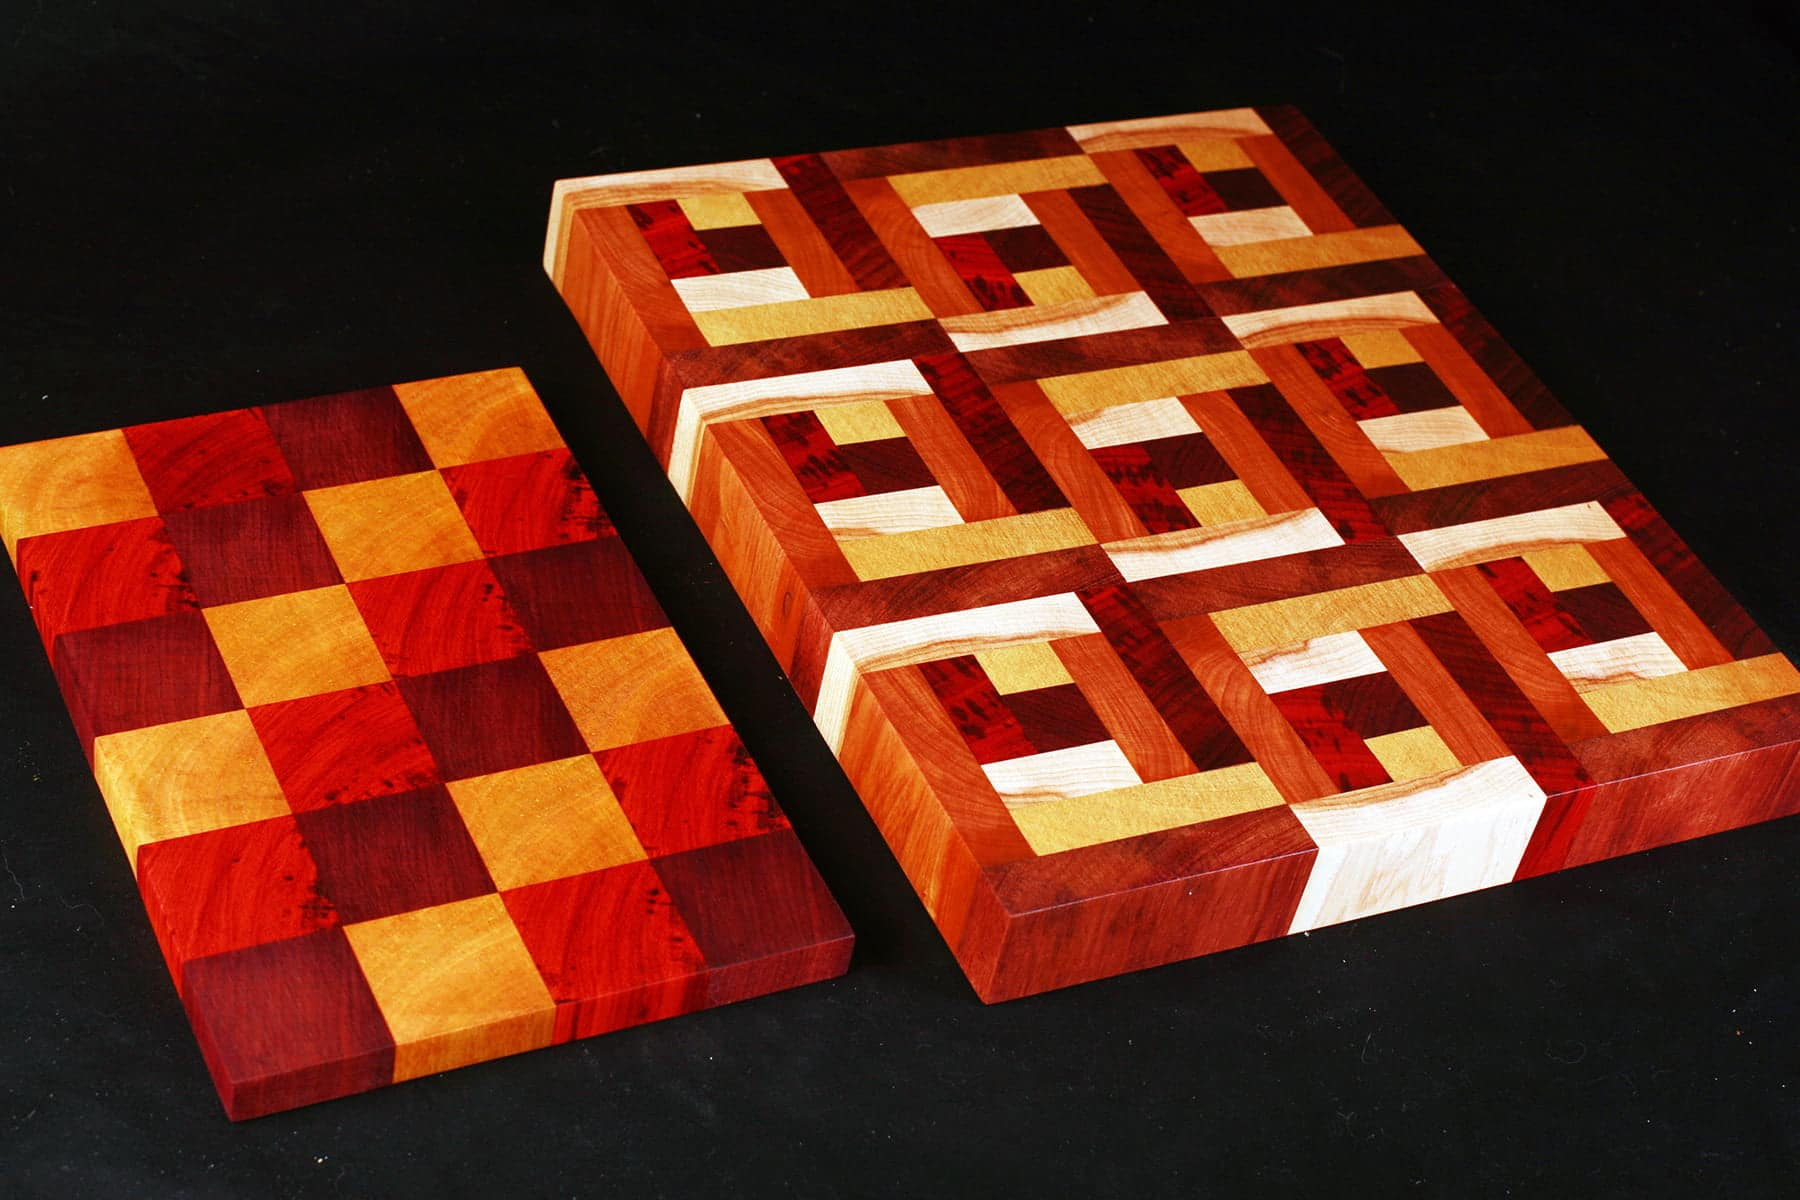 Two fancy cutting boards made of many small pieces of brightly coloured wood.